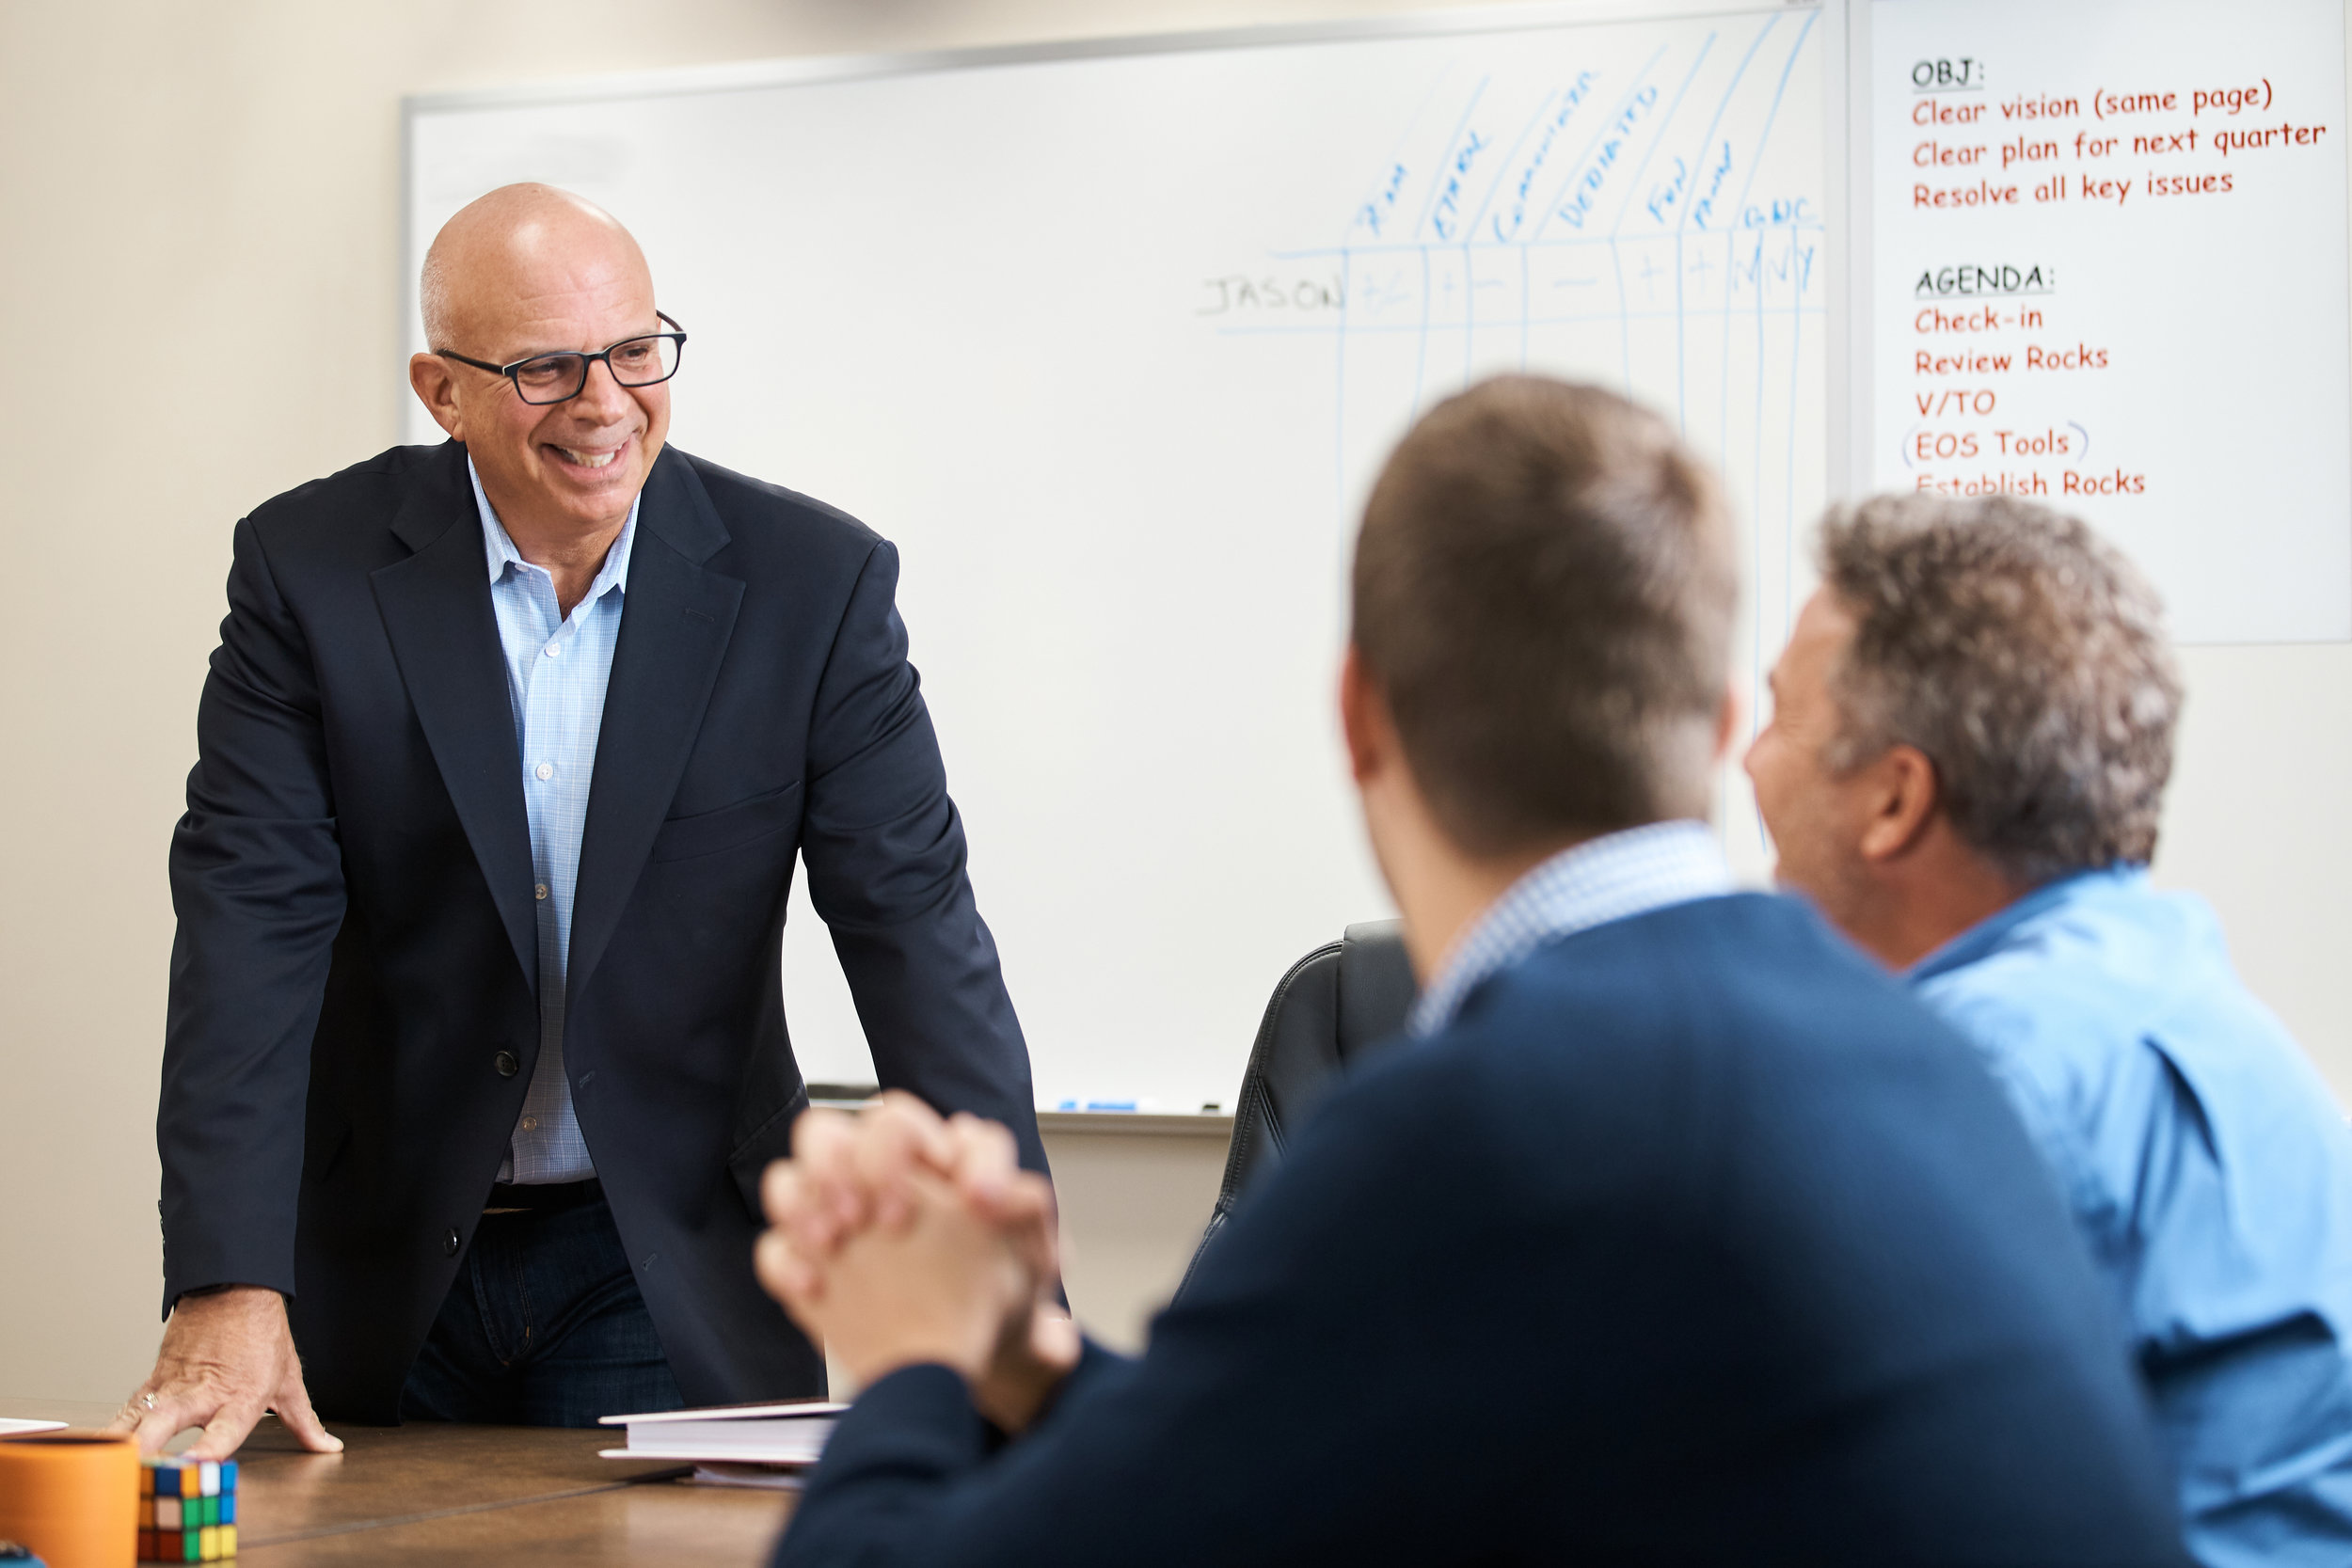 PEOPLE - We define what great people are in your organization and then work to get them operating in the right seats. We cut through all the jargon, such as; A-players, superstars, top-quartile, etc. and identify who are the best people for your organization.